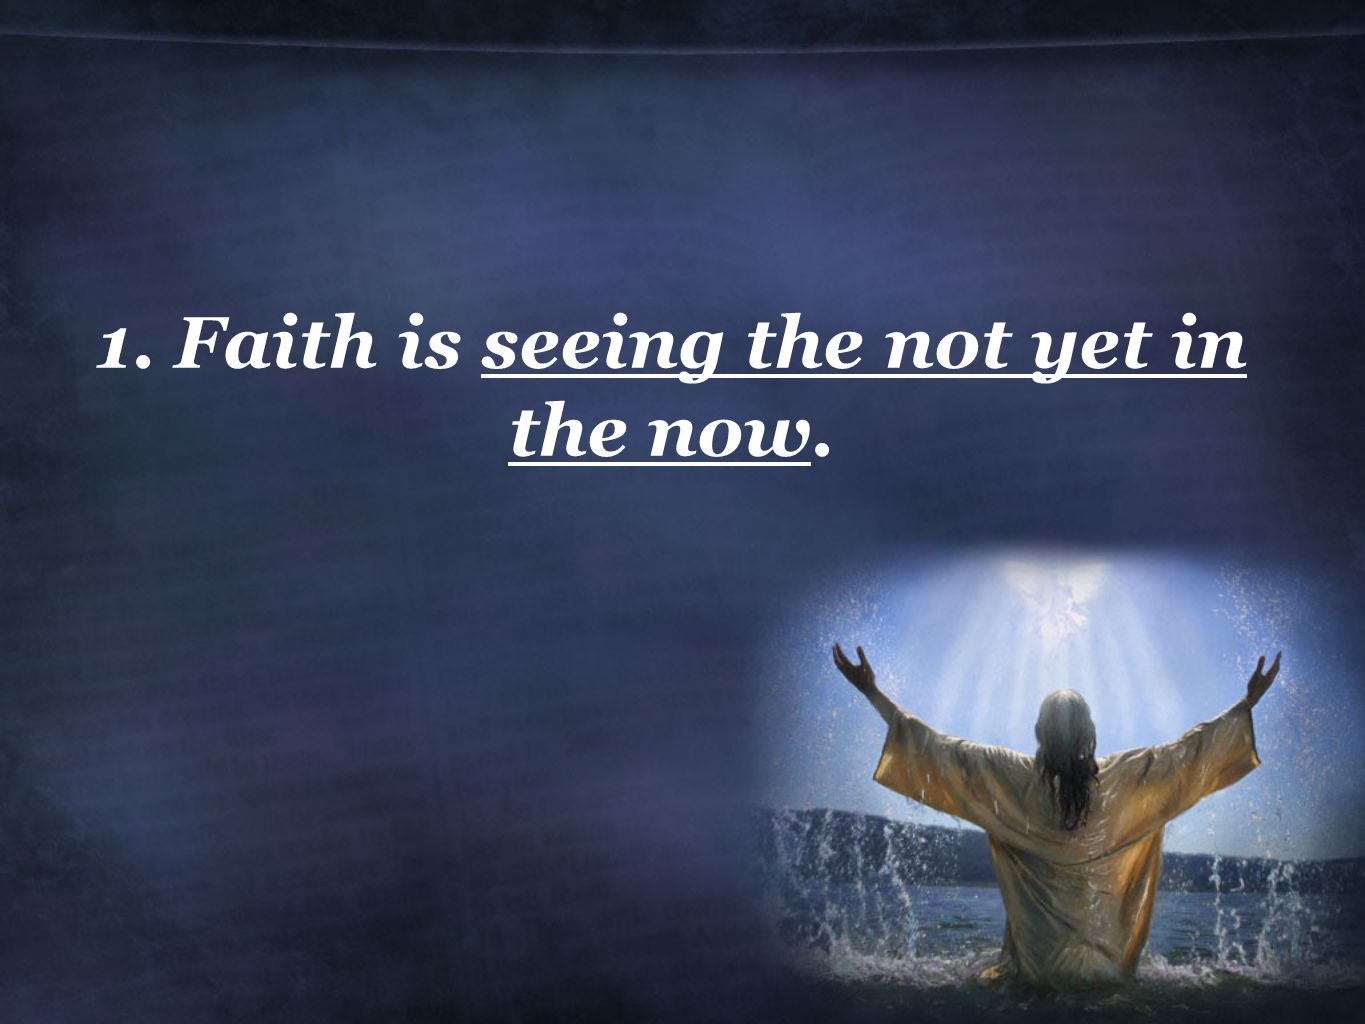 Hebrews 11:1 (NIV) 1 Now faith is being sure of what we hope for and certain of what we do not see.